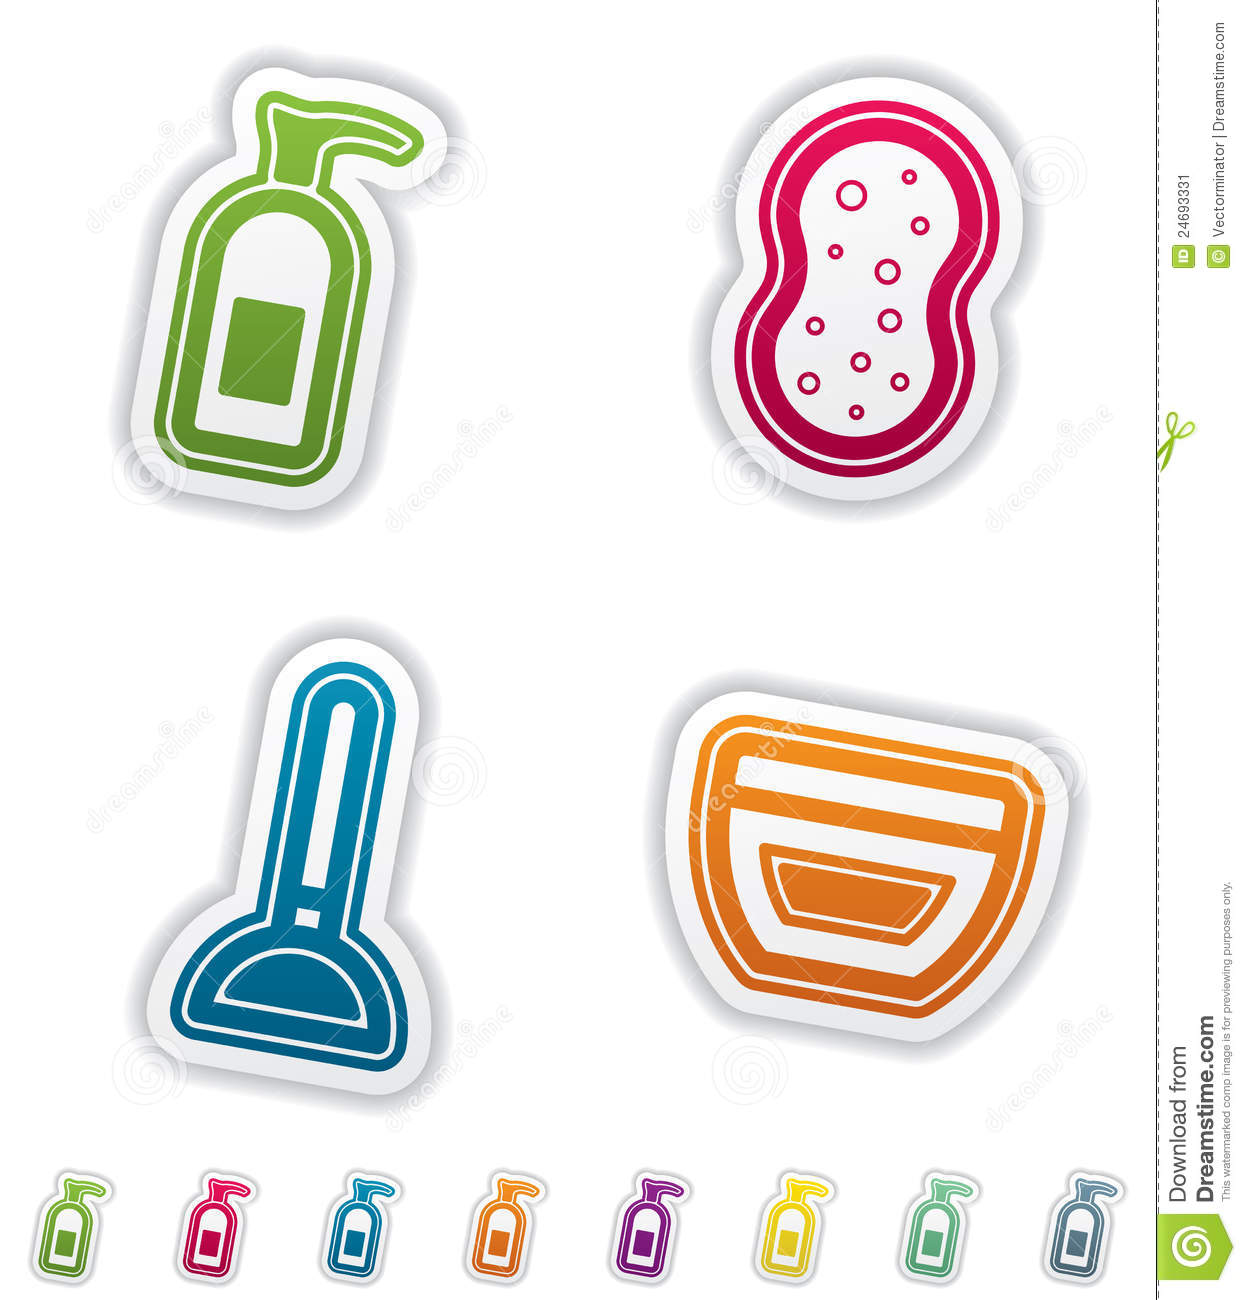 Bath utensils stock image image 24693331 for Bathroom utensils